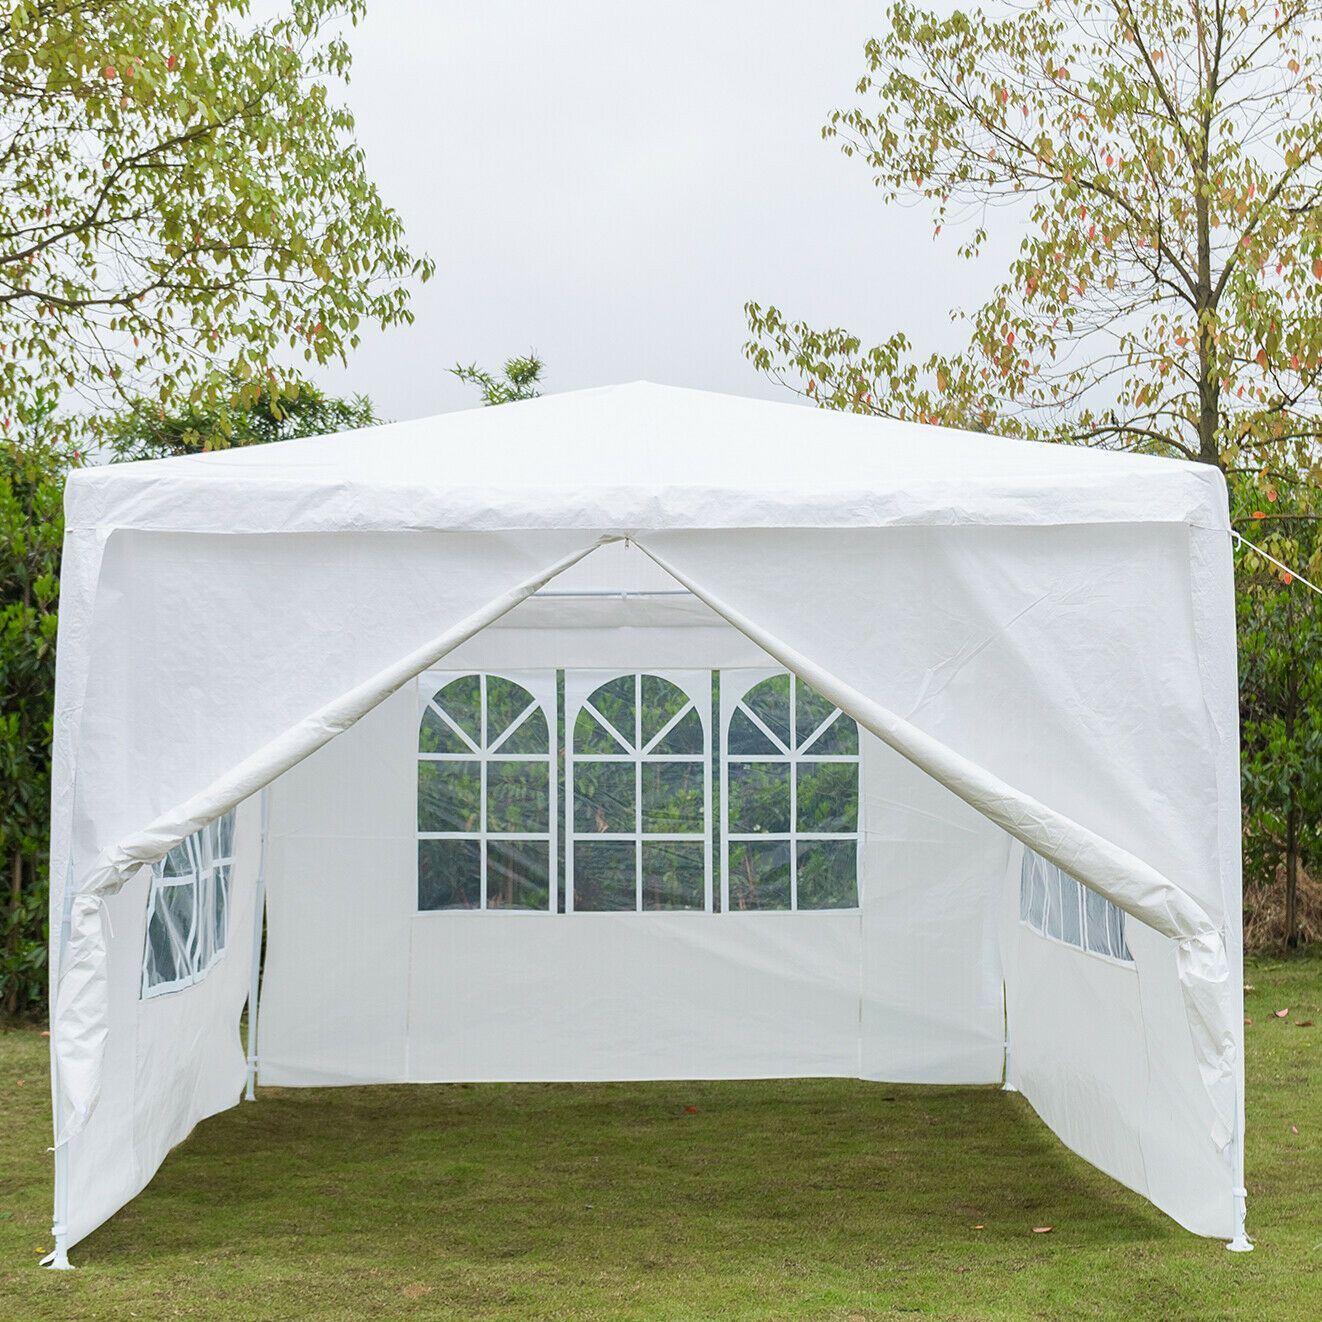 Quictent 10 X10 Outdoor Canopy Party Wedding Tent Gazebo Pavilion 2 Window Side Walls 2 Zippered Walls Walmart Com In 2020 Canopy Tent Outdoor Canopy Outdoor Gazebo Tent